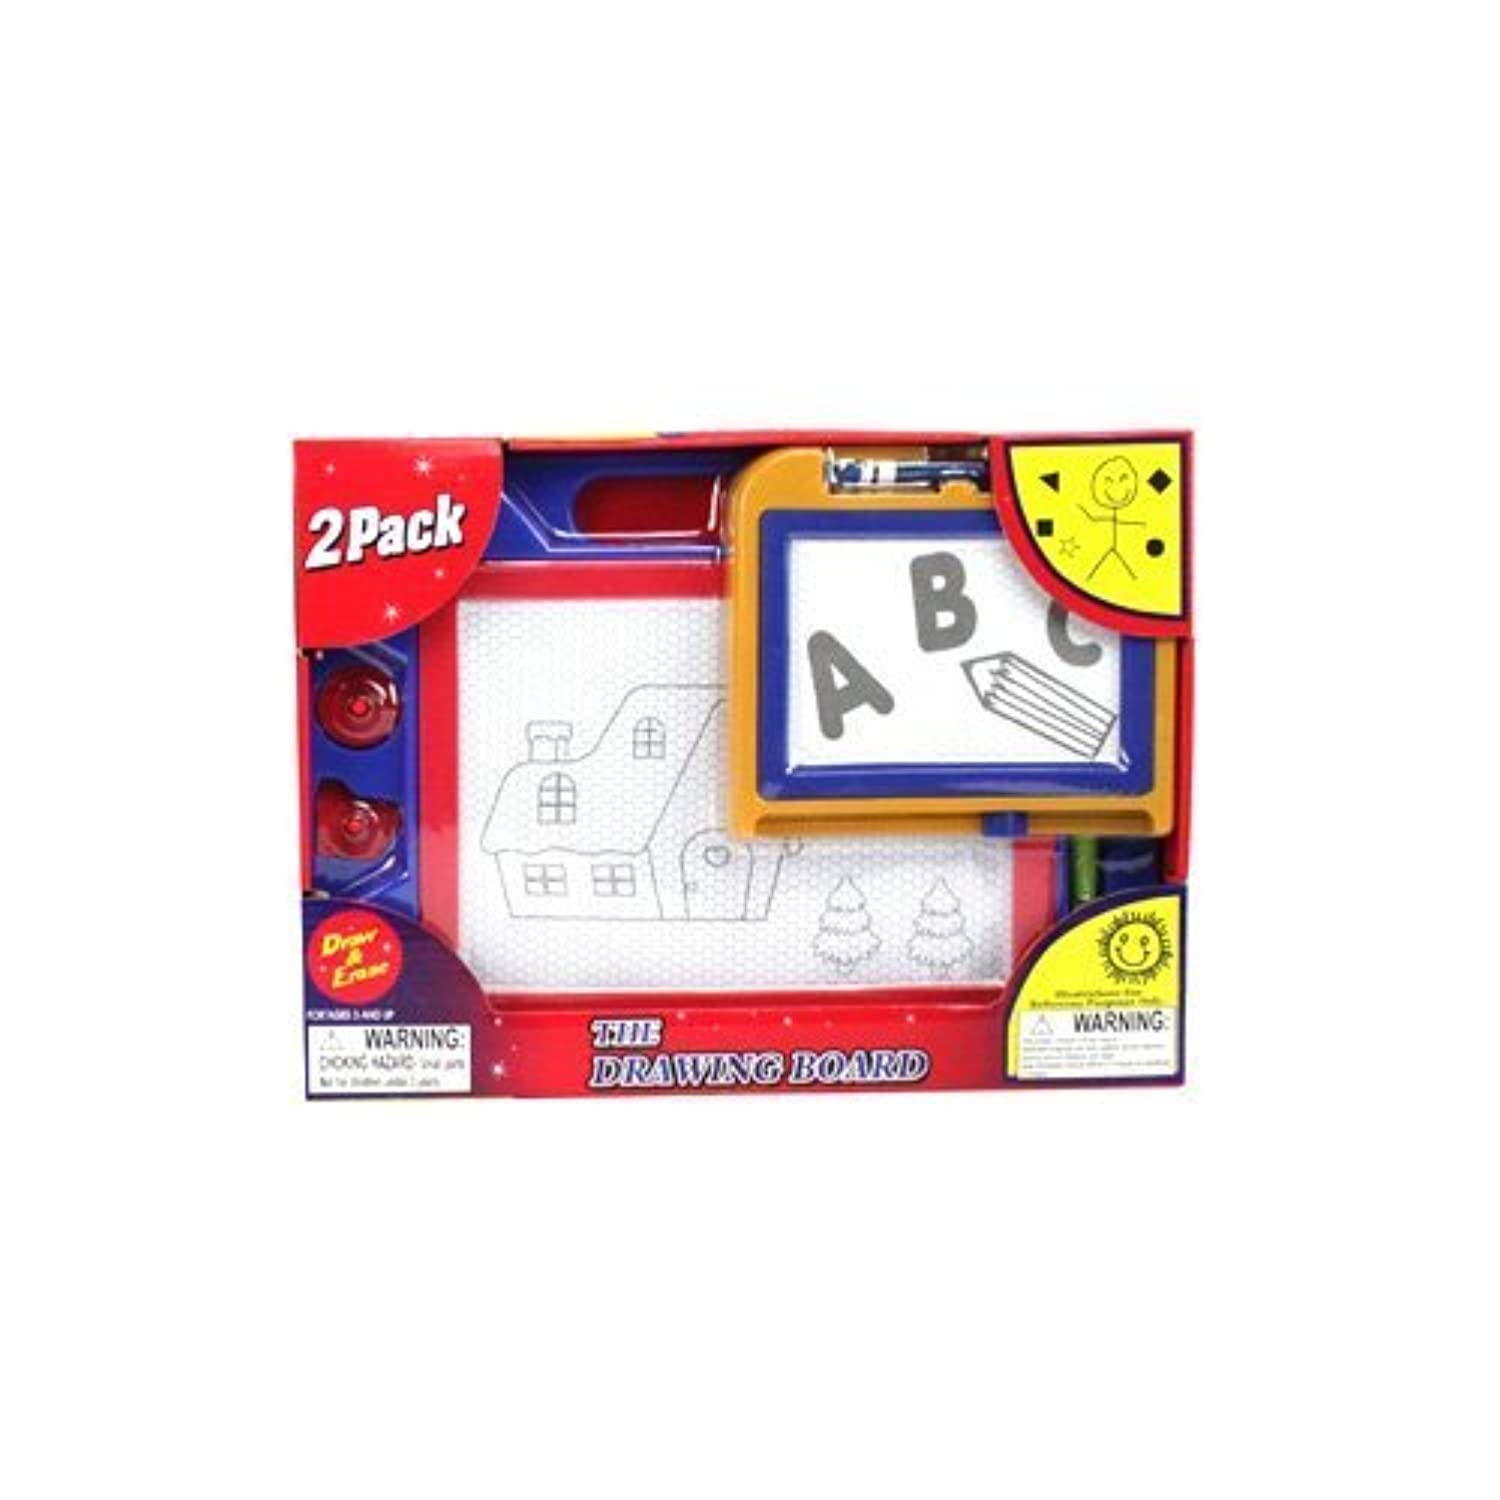 Okk Toys 2 Pack The Drawing Board For Kids Age 3+ ( Color May Vary )